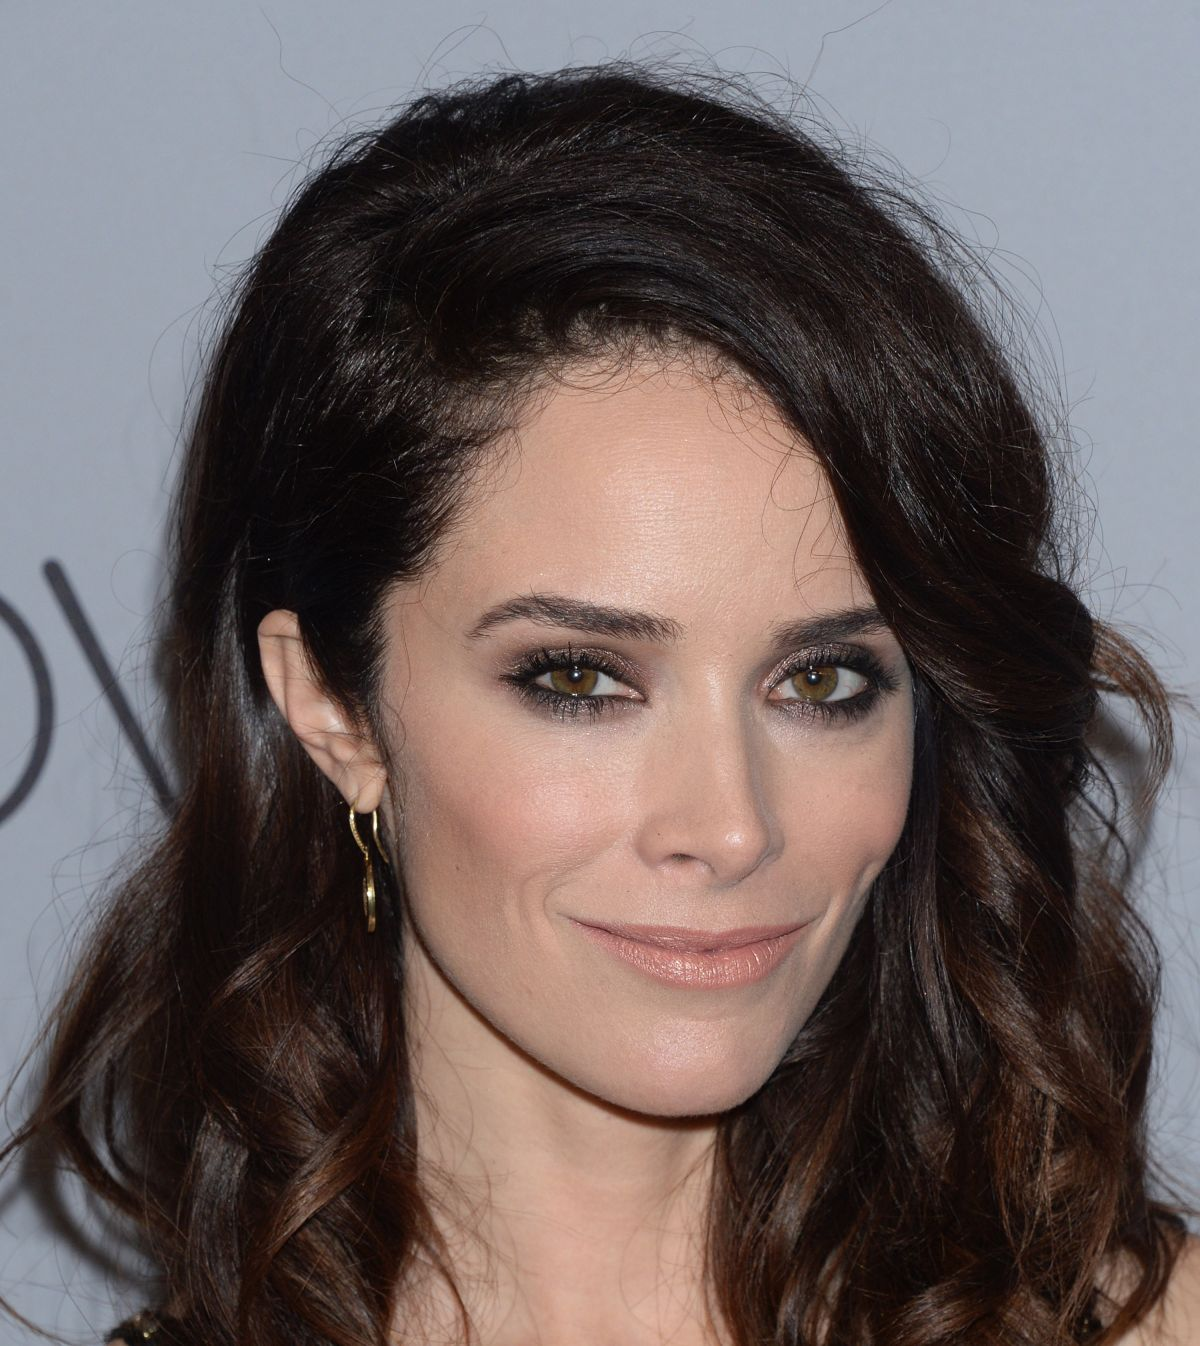 62479017_abigail-spencer-at-instyle-warner-bros-golden-globes-after-party-in-los-angeles.jpg